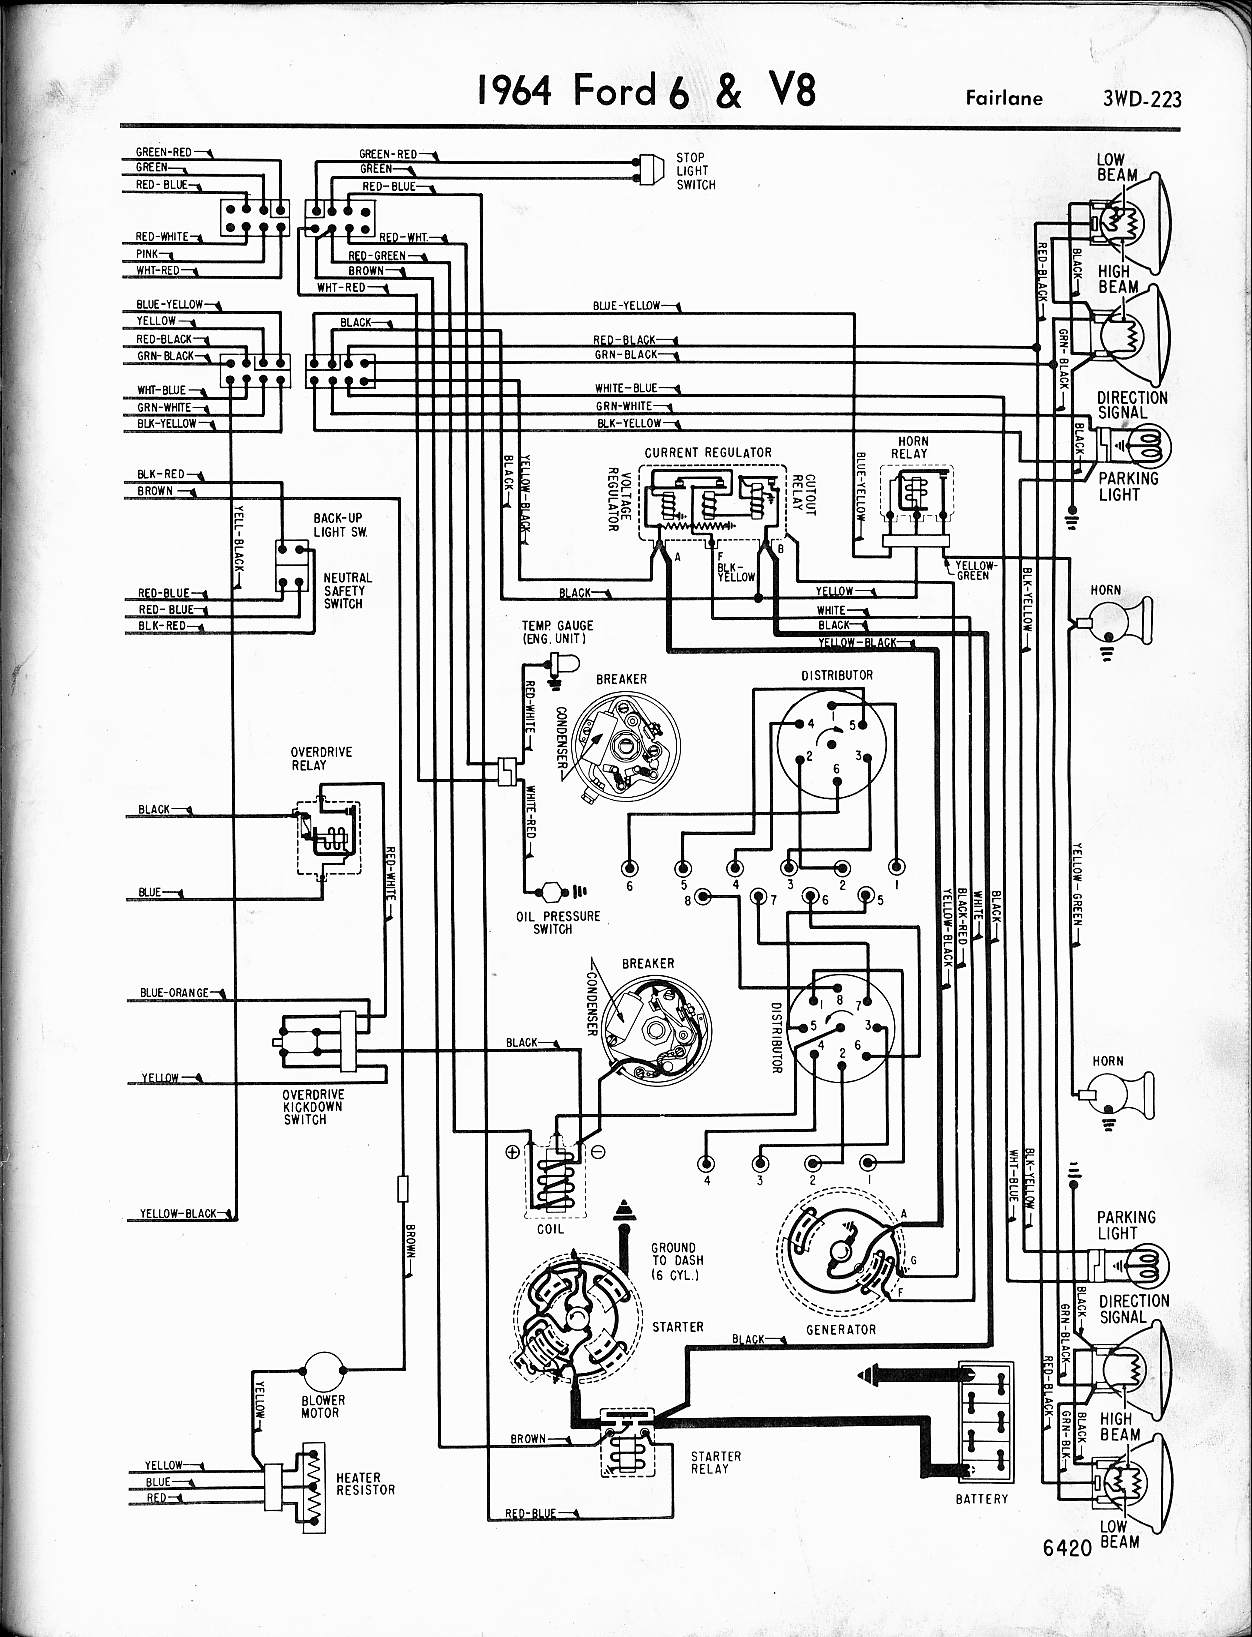 MWire5765 223 57 65 ford wiring diagrams Ford E 350 Wiring Diagrams at sewacar.co